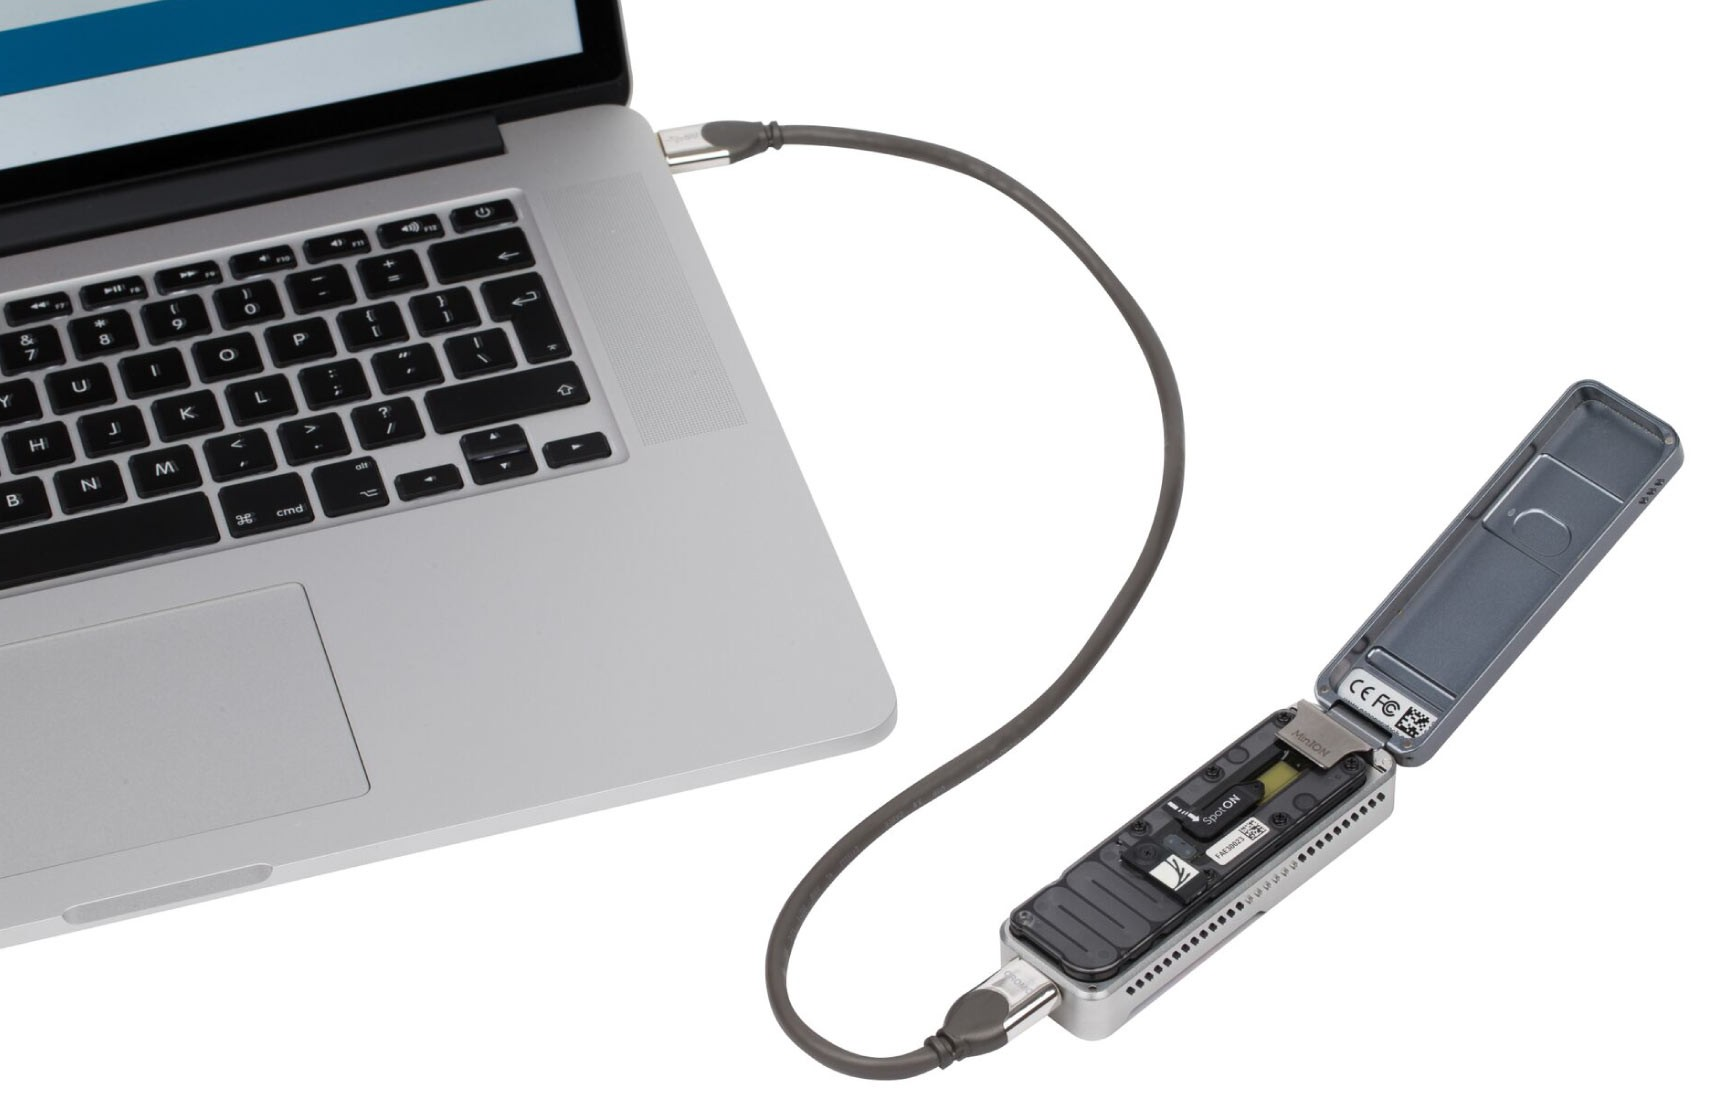 The MinION device, a small, handheld device that can sequence a person's genome, is plugged into a laptop to transfer data